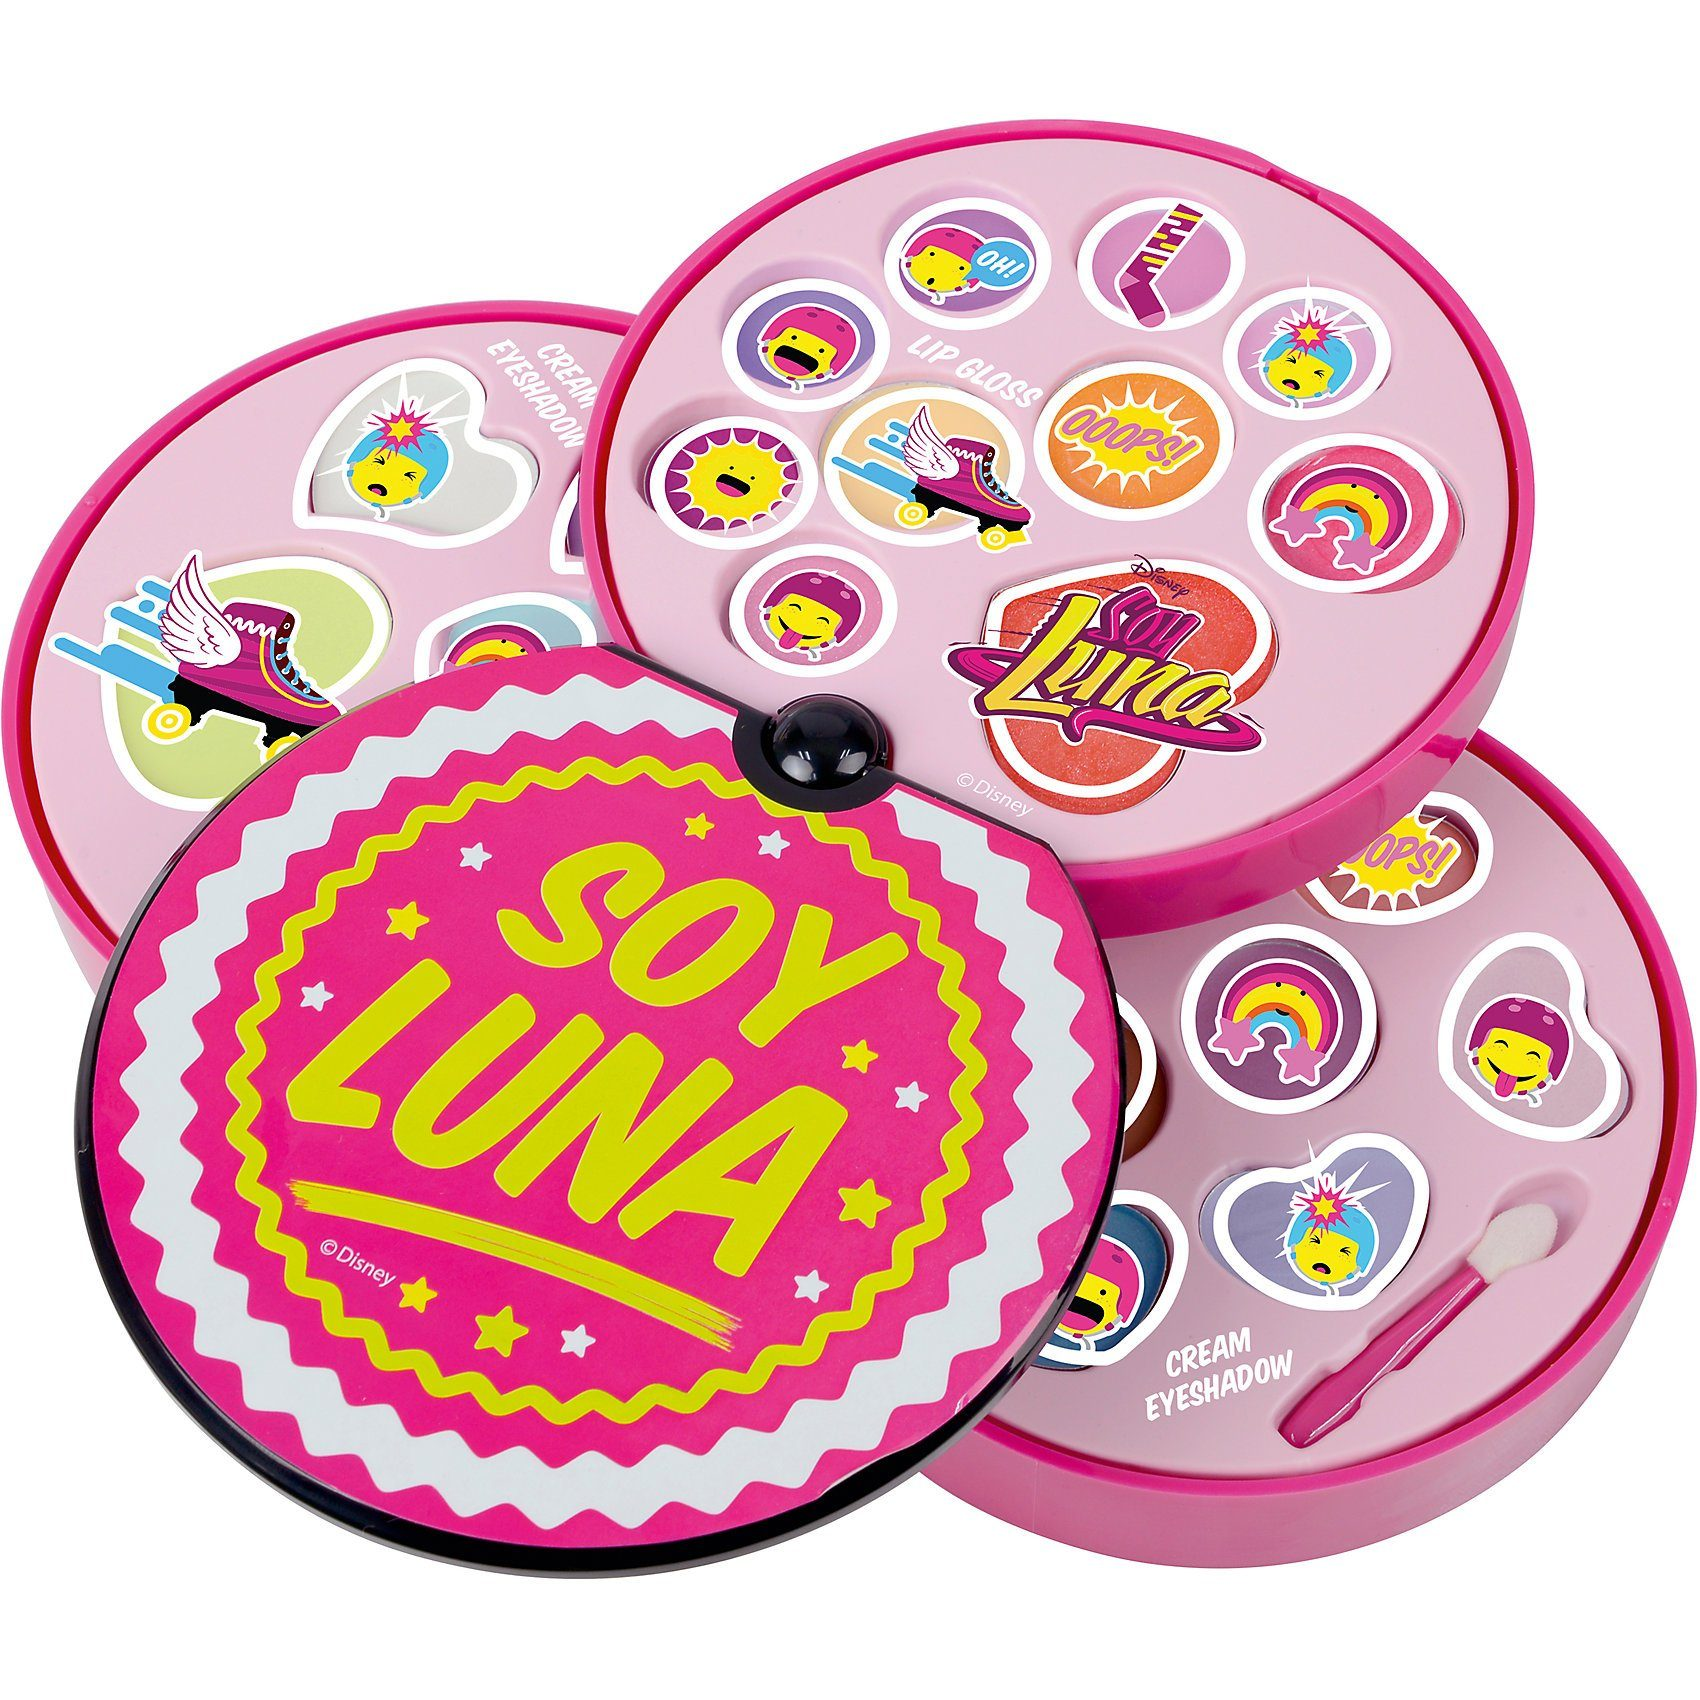 Empeak Soy Luna Make-up Compact Set